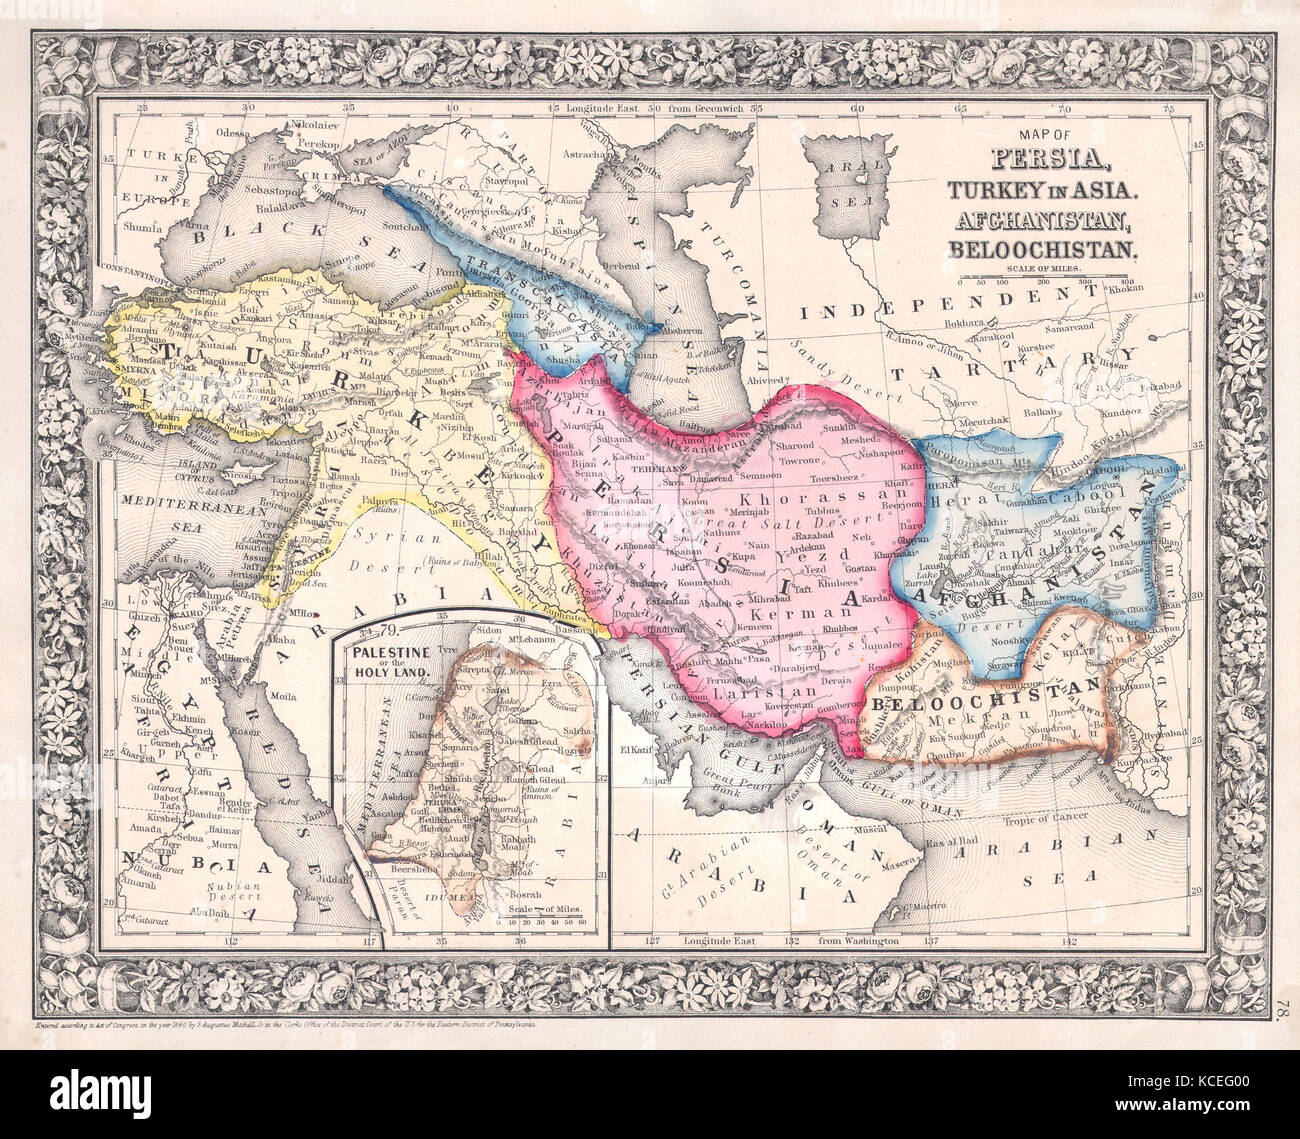 1864 mitchell map of persia turkey and afghanistan iran iraq 1864 mitchell map of persia turkey and afghanistan iran iraq gumiabroncs Gallery